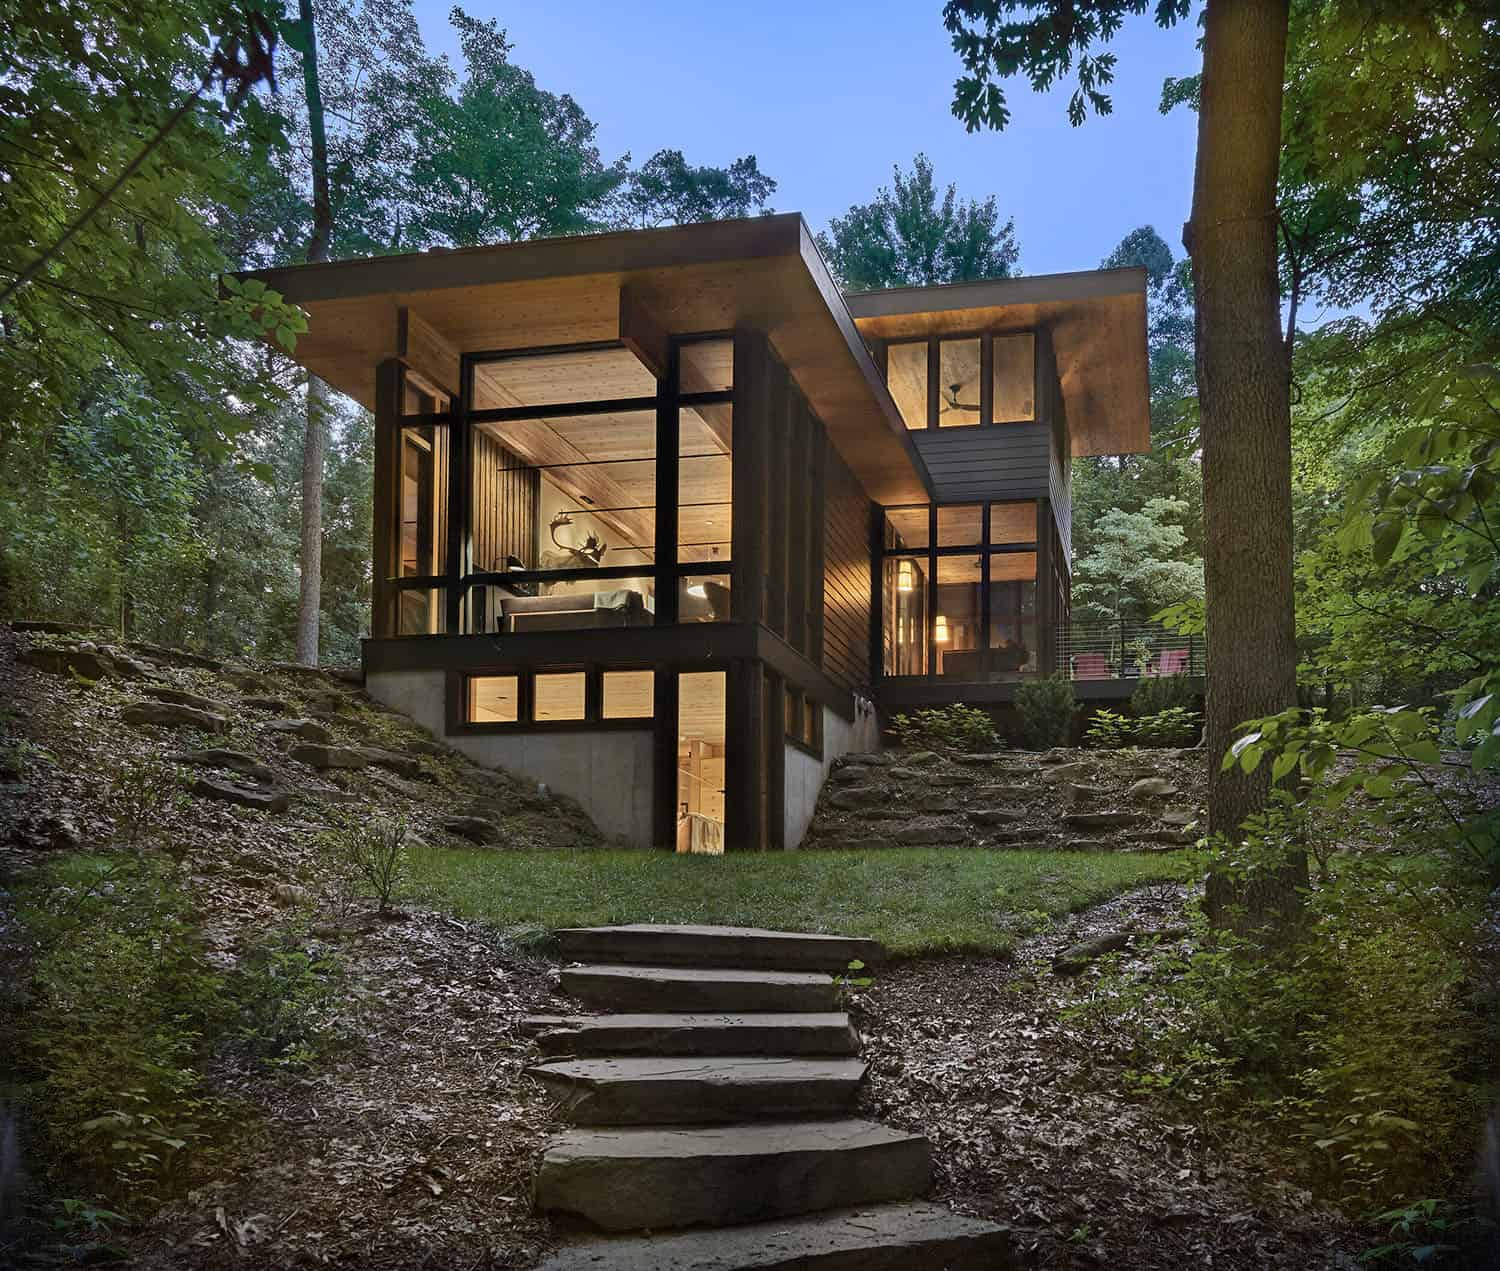 Reconnect with nature in a stunning Michigan retreat under a tree canopy